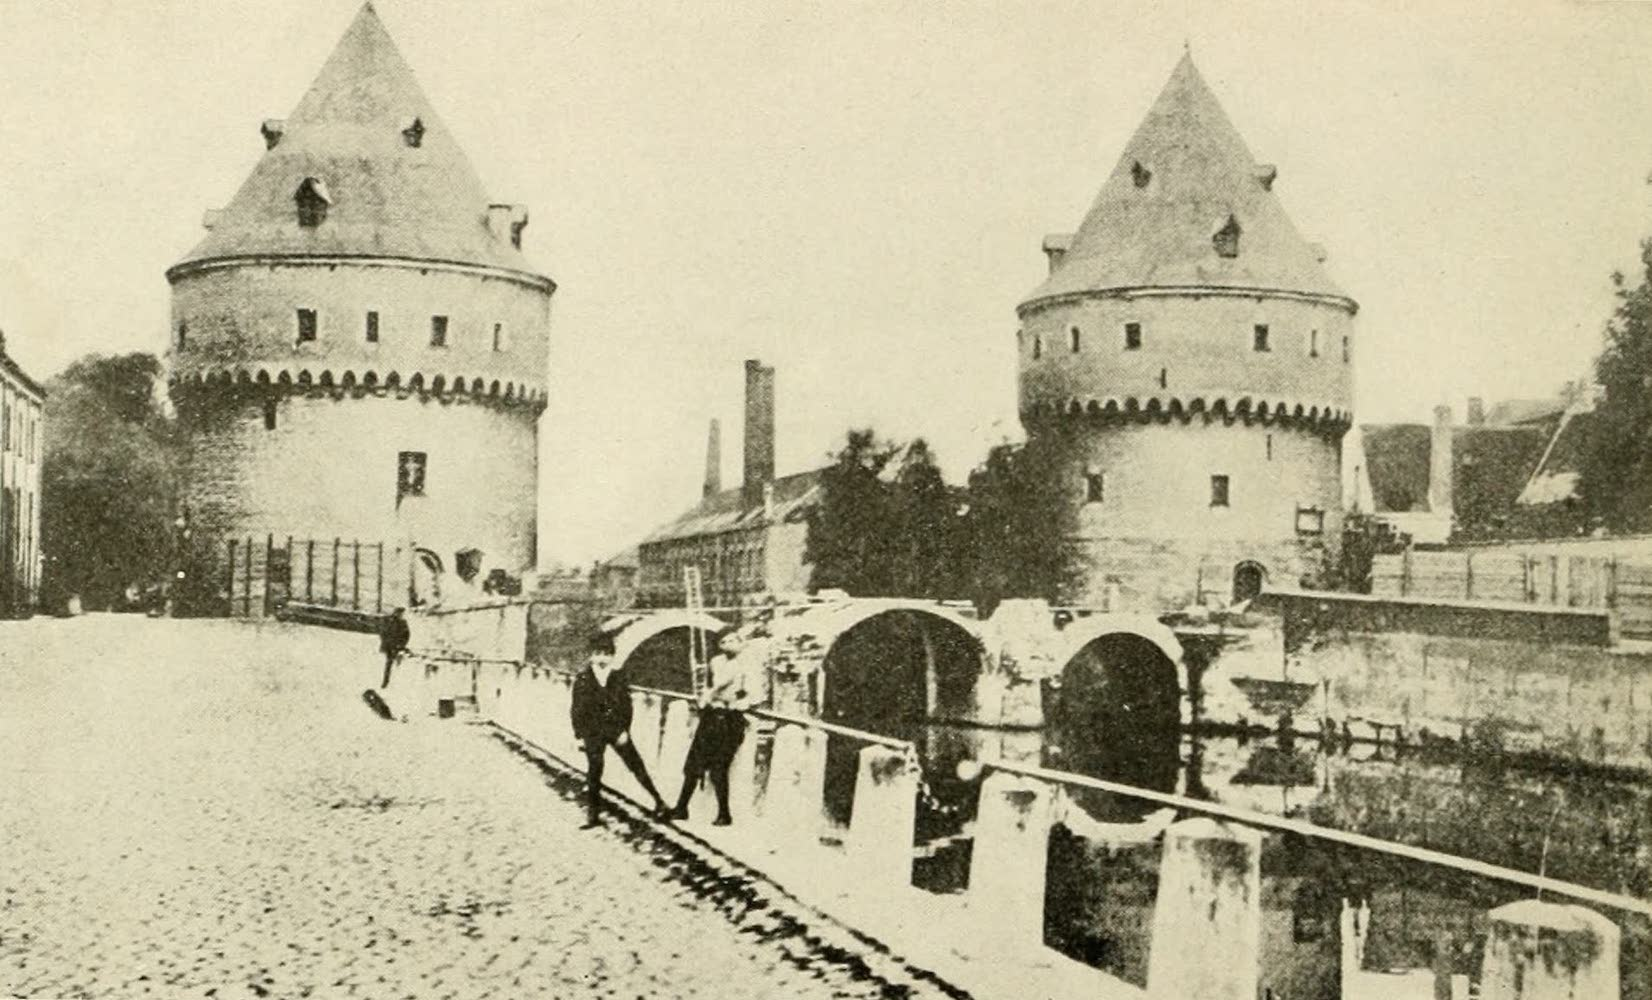 Laird & Lee's World's War Glimpses - Strongly Fortified Ancient Belgian Citadel (1914)